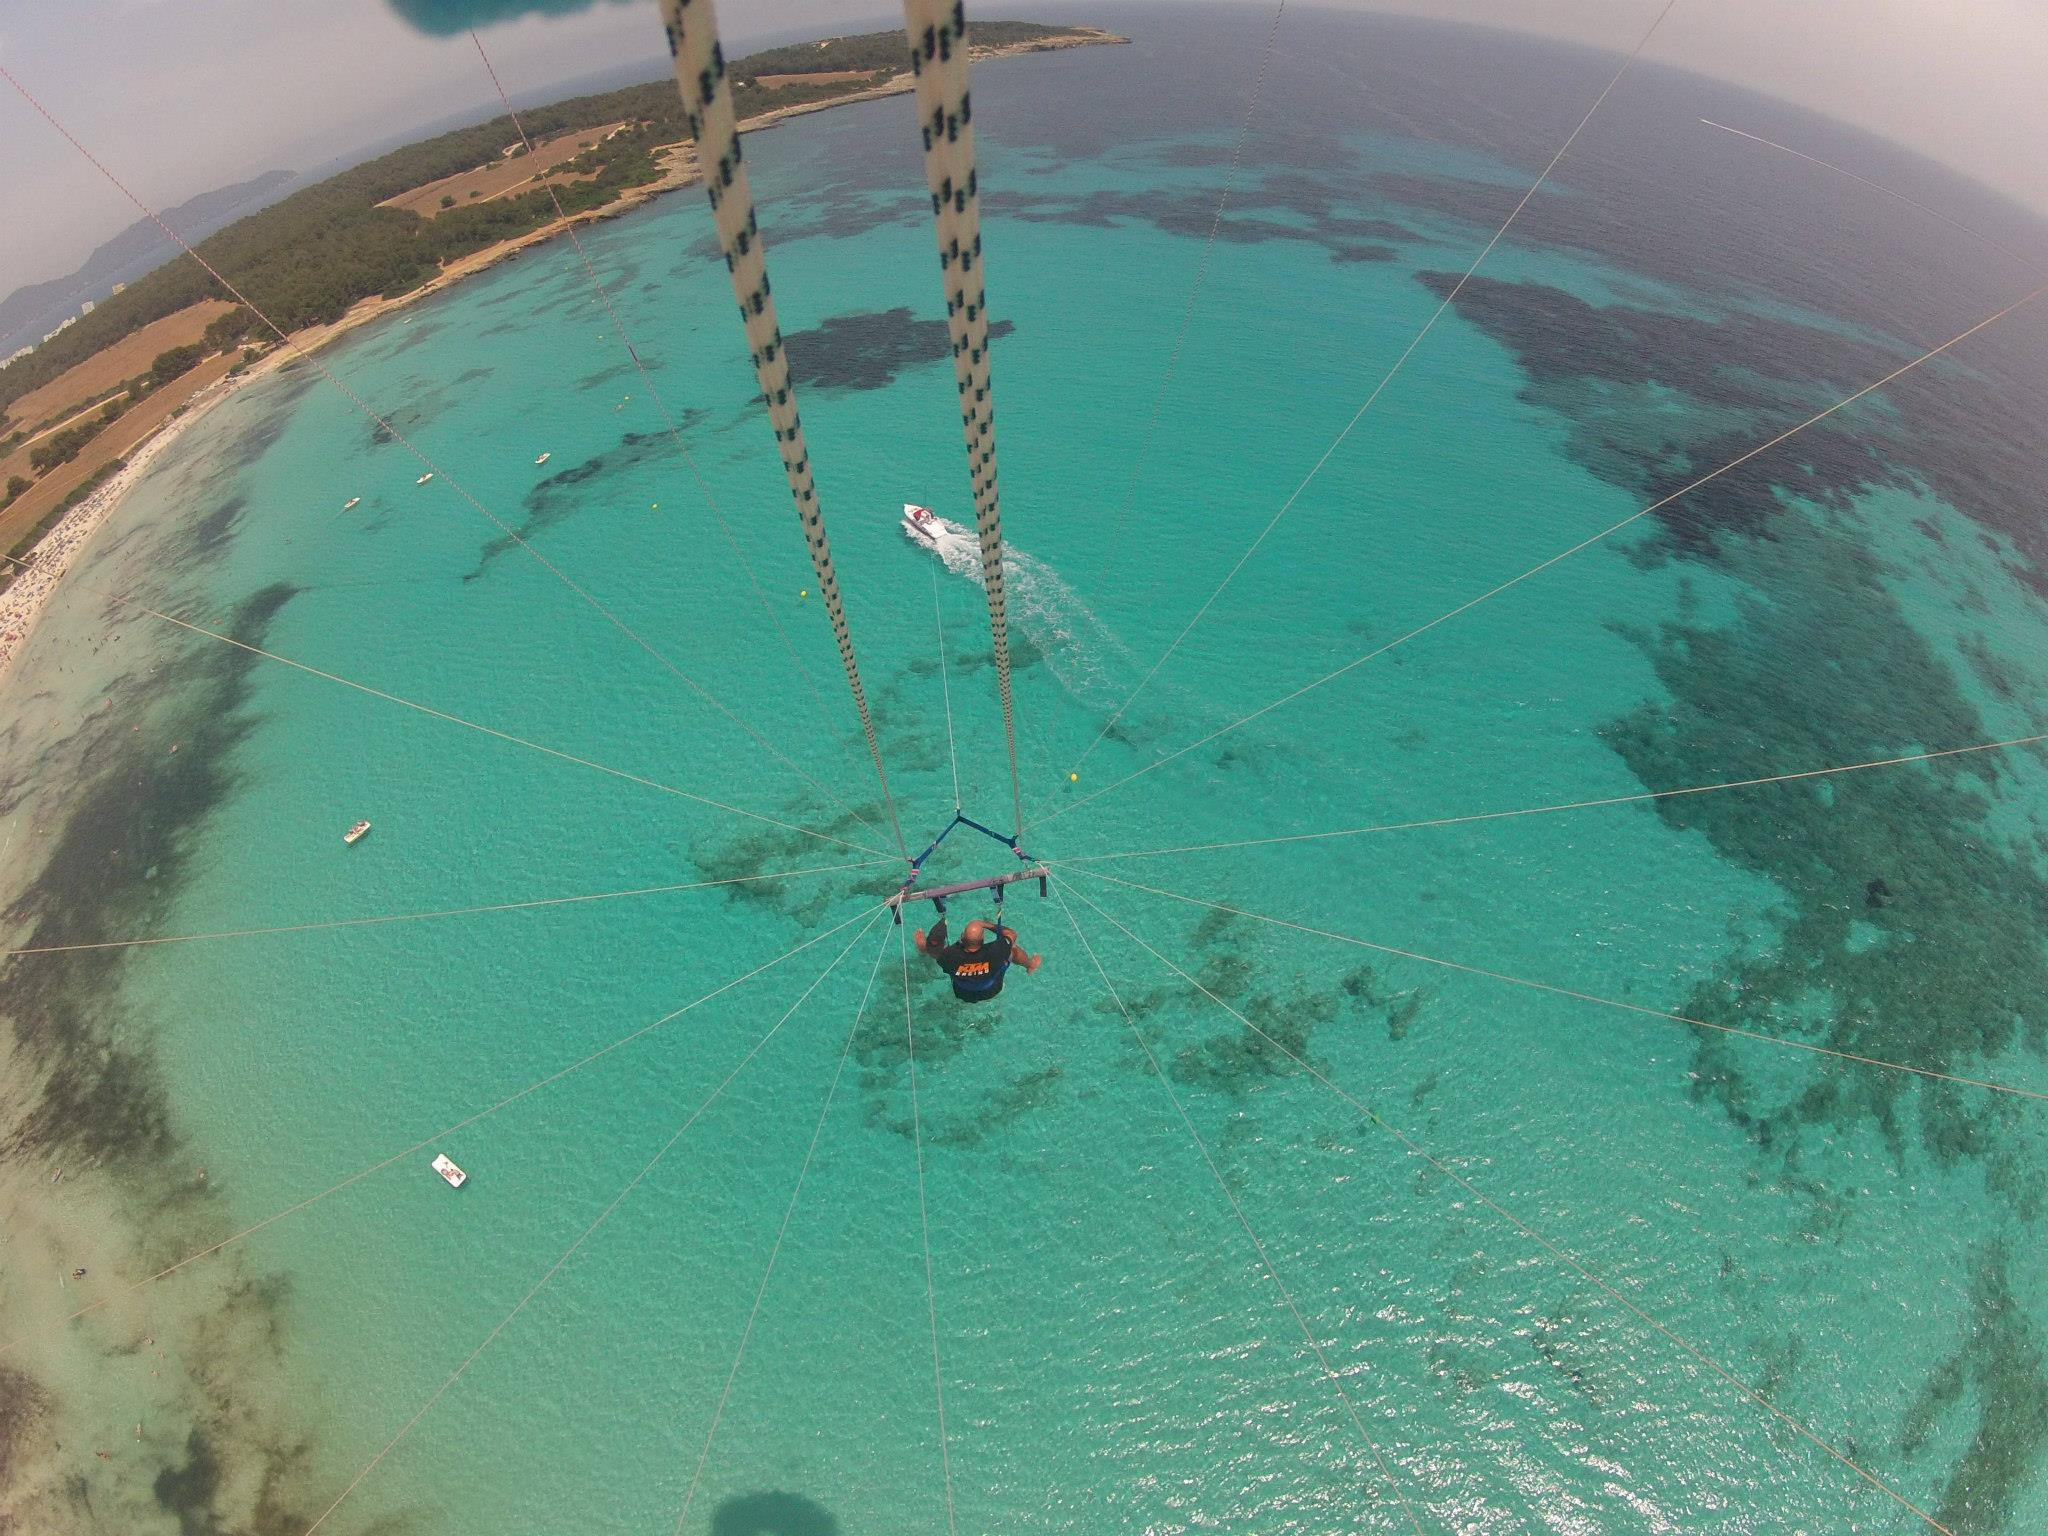 Extreme Photo of the Day!